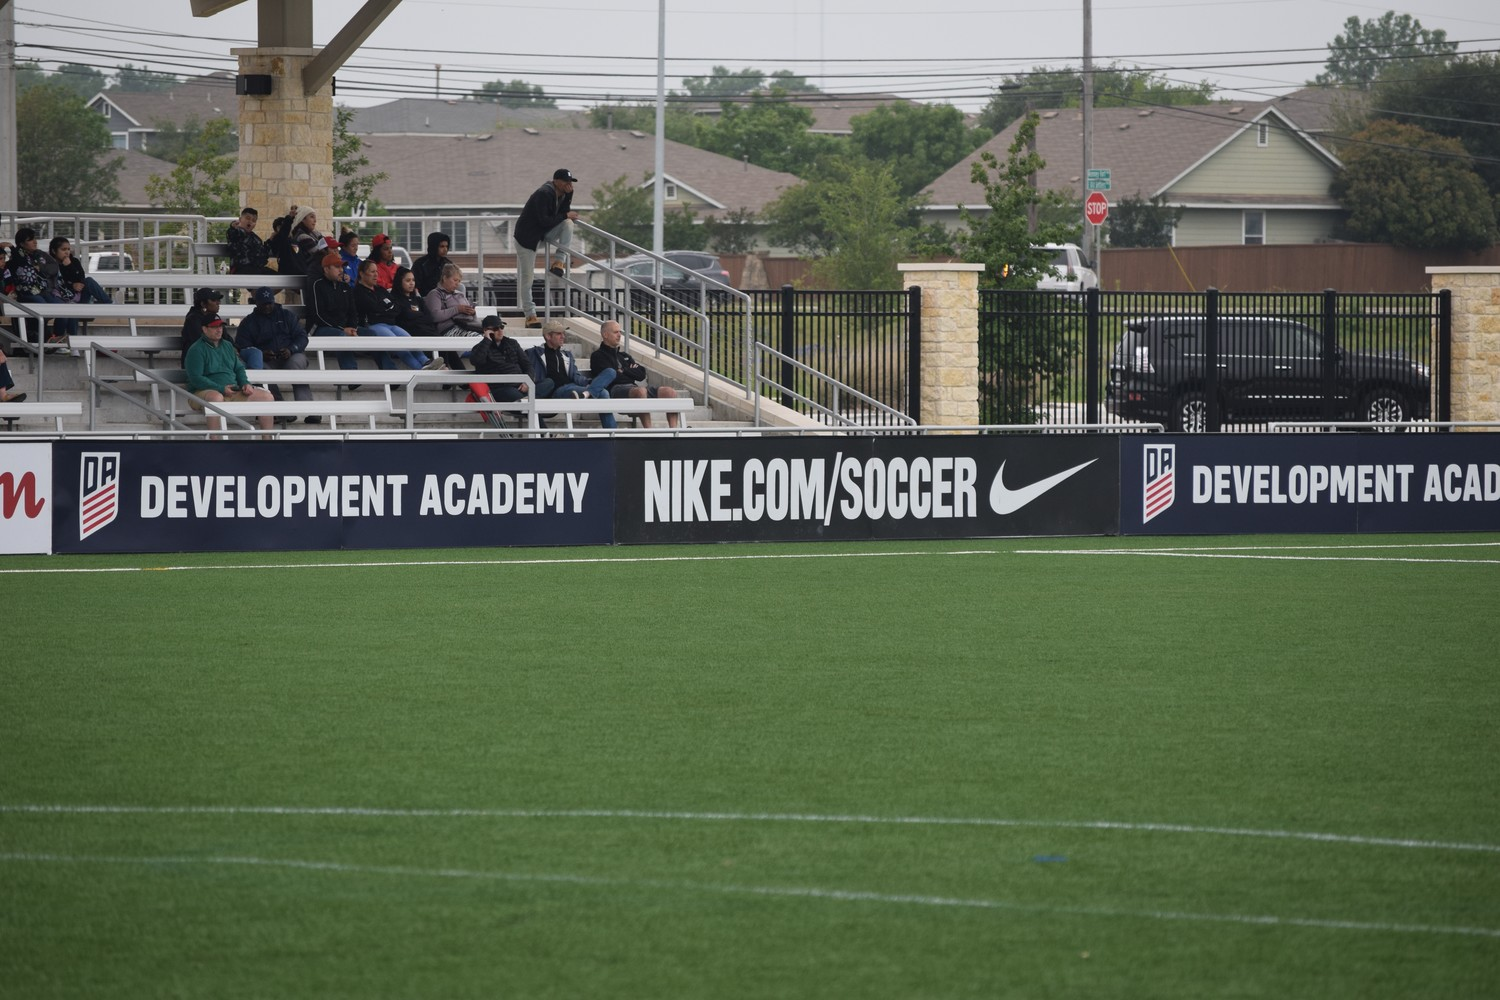 This was the first season where girls' high school soccer players had to choose between playing for their school or with the development academy.